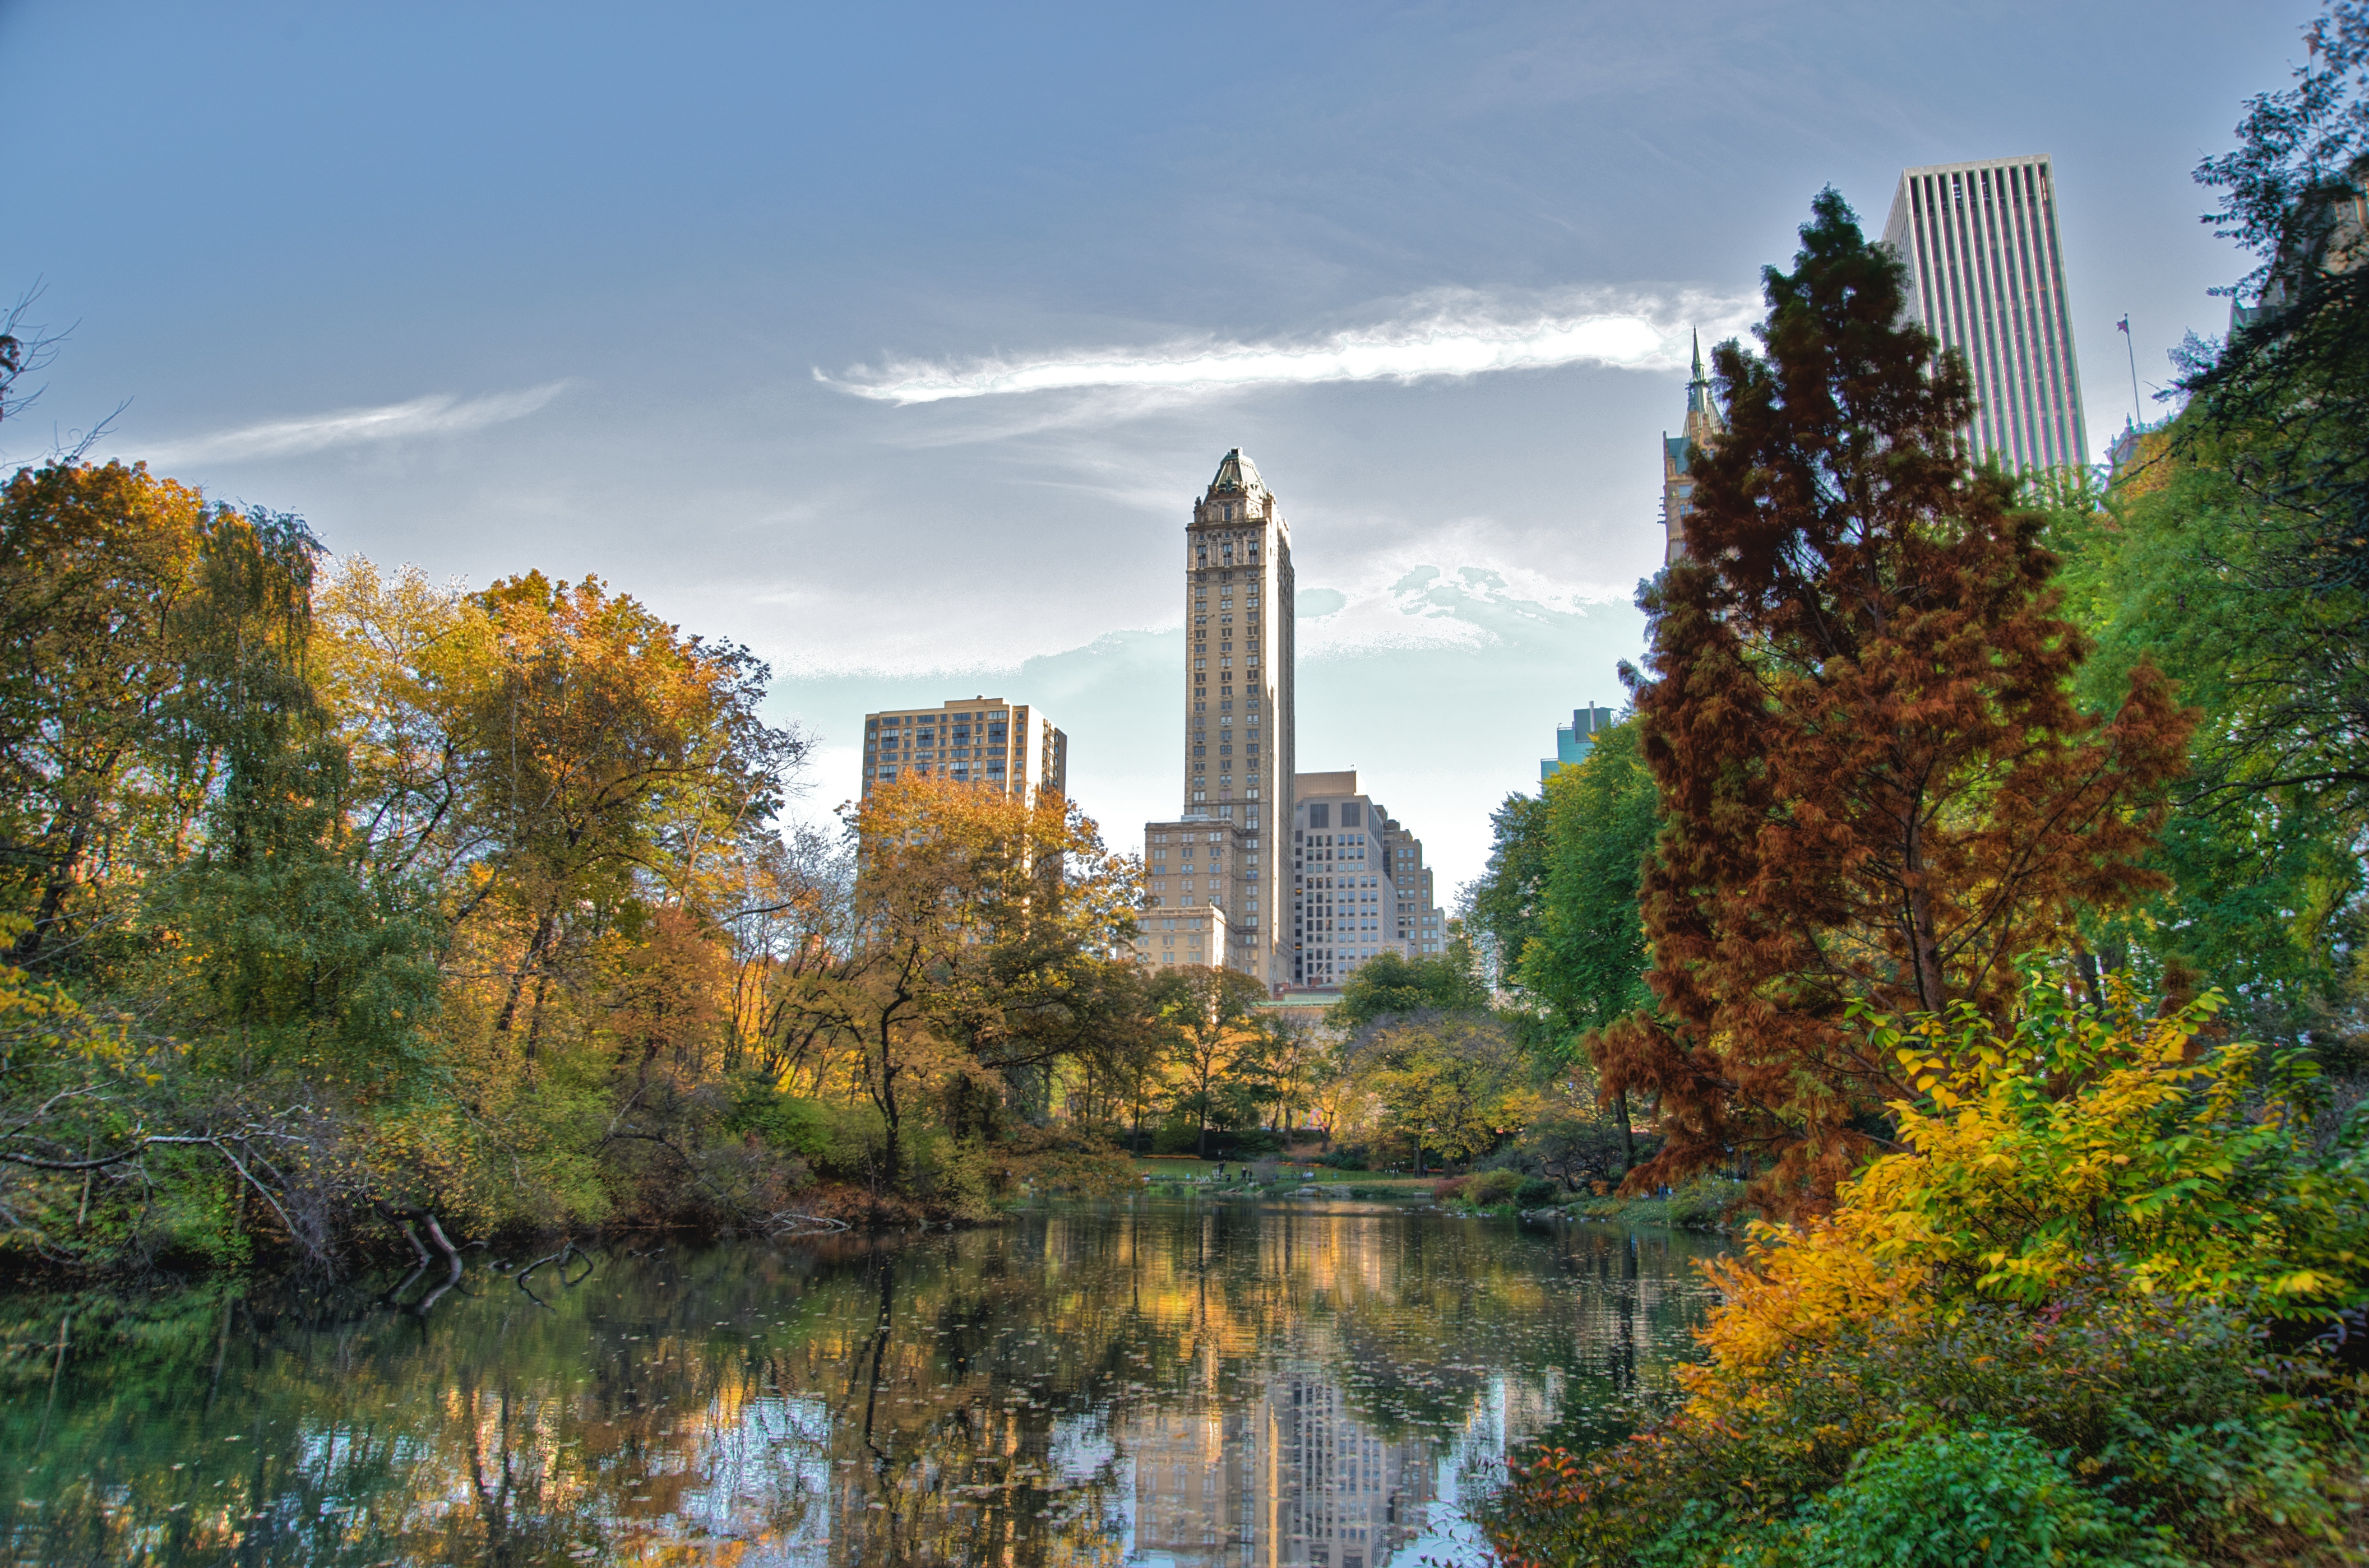 Central Park New York One Of The World 39 S Most Famous Urban Parks Photos Places Boomsbeat